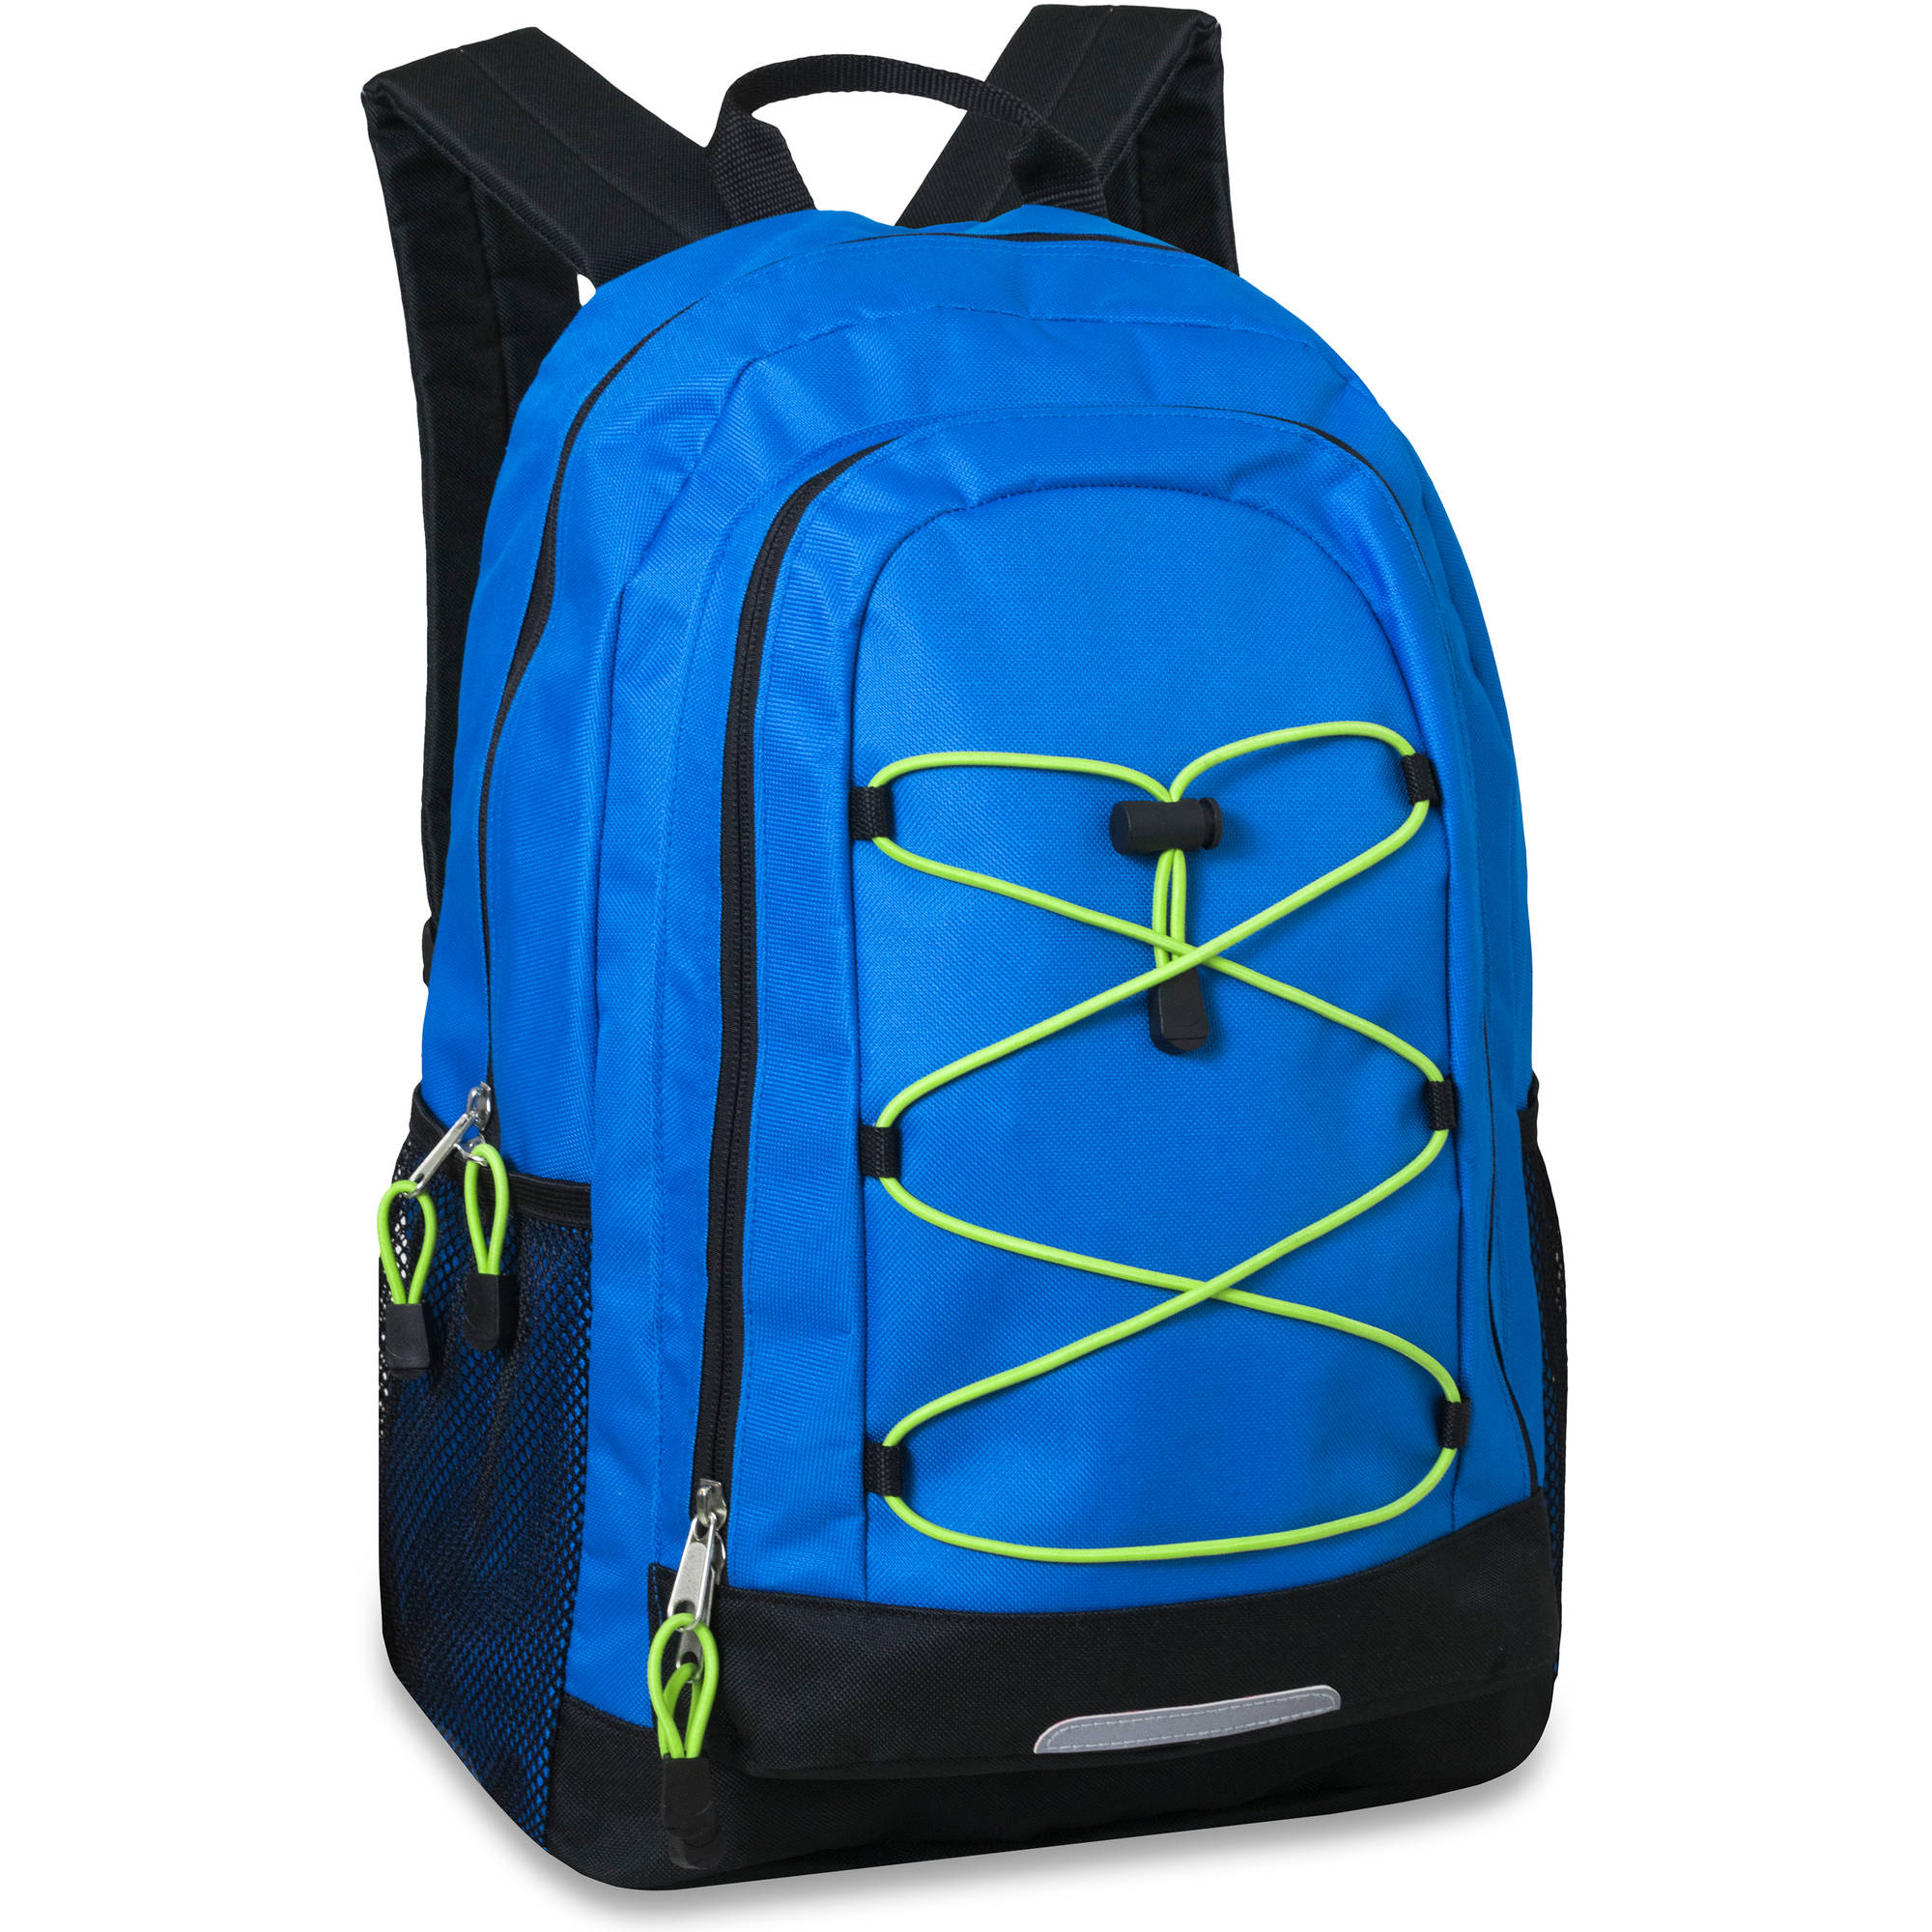 18.5 Inch Optimum Bungee Backpack